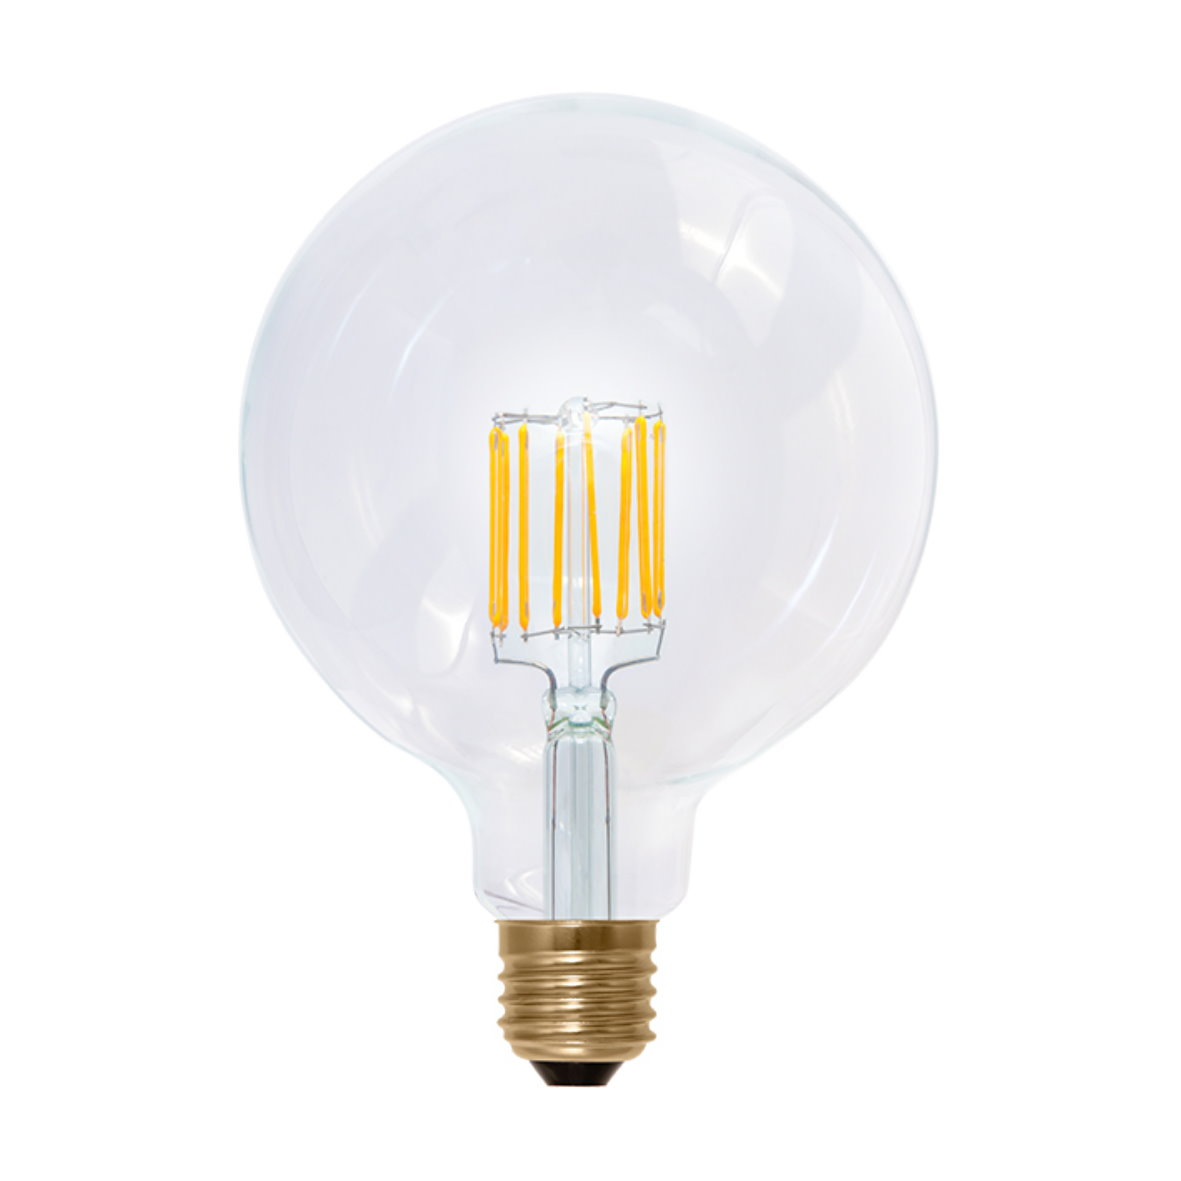 segula cob led leuchtmittel filament edison dimmbar dimmable birne bulb candle ebay. Black Bedroom Furniture Sets. Home Design Ideas